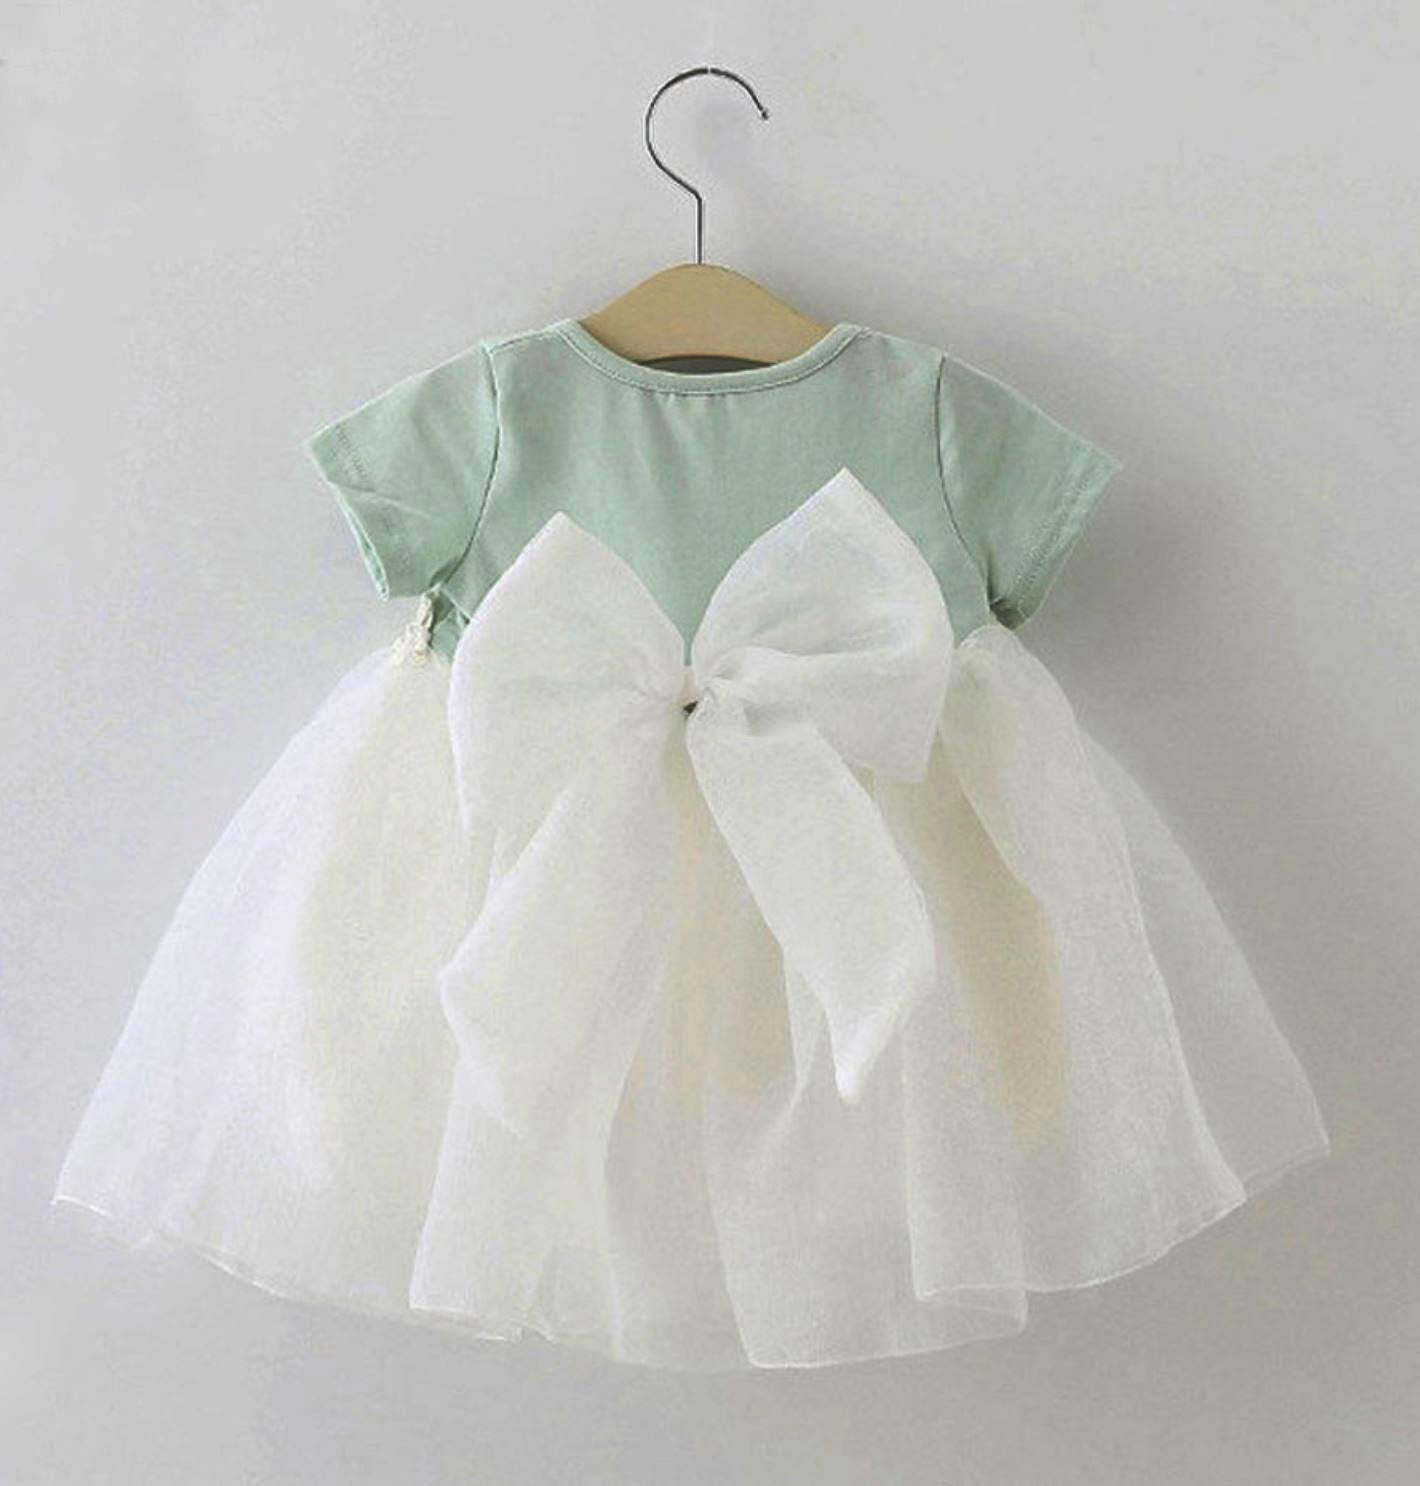 ecbc23625 Bow Knot Mint Green Baby Dress Cotton Baby Shower Gift Granddaughter ...